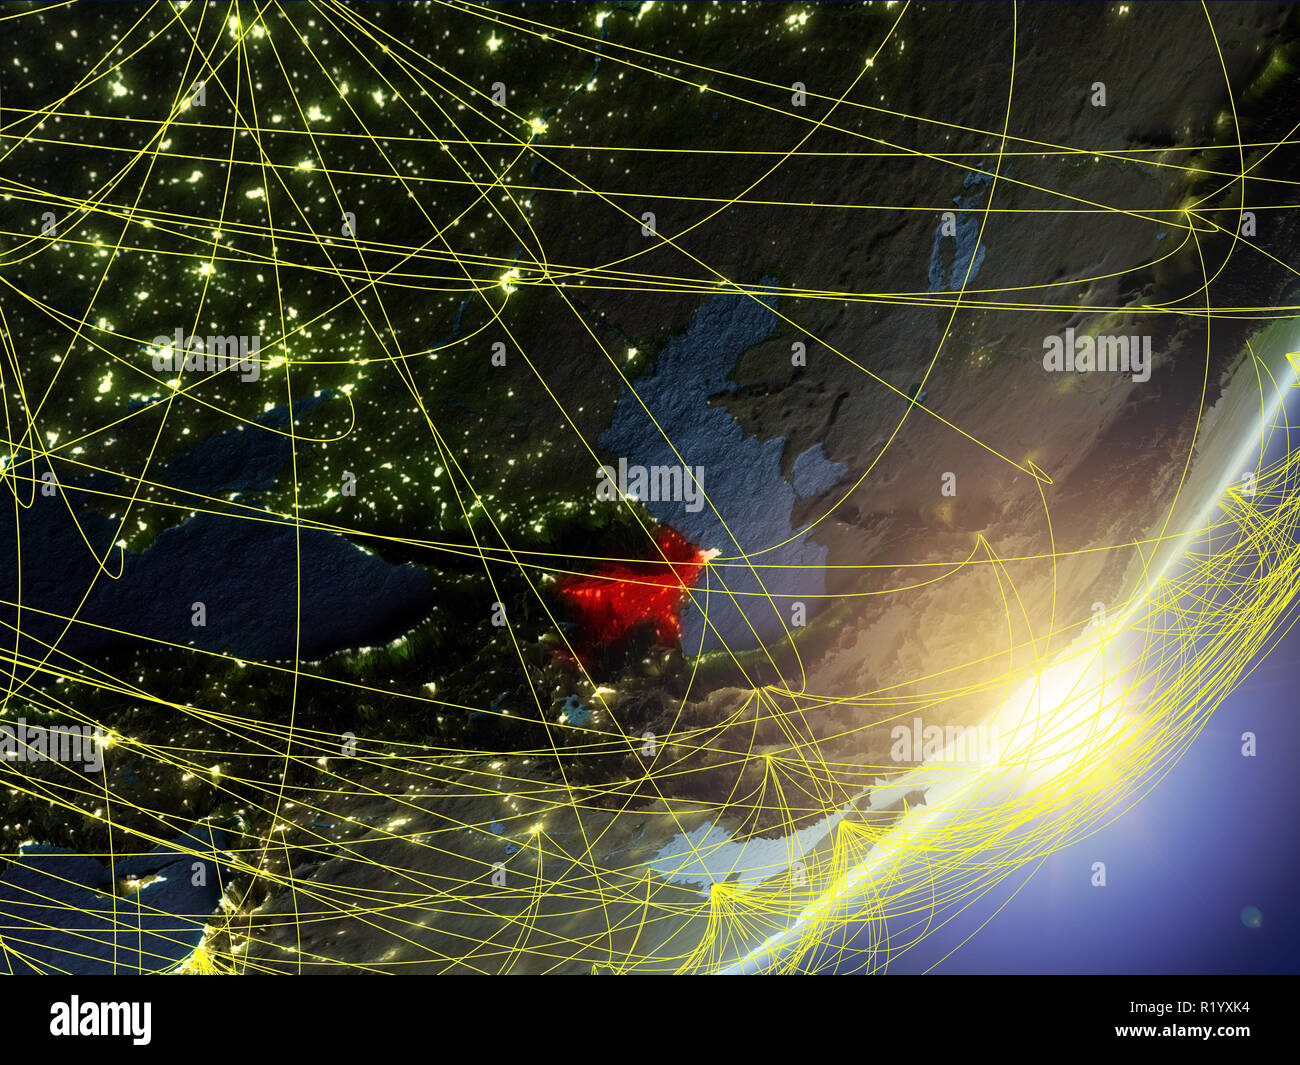 Azerbaijan on model of planet Earth with network during sunrise. Concept of new technology, communication and travel. 3D illustration. Elements of thi - Stock Image